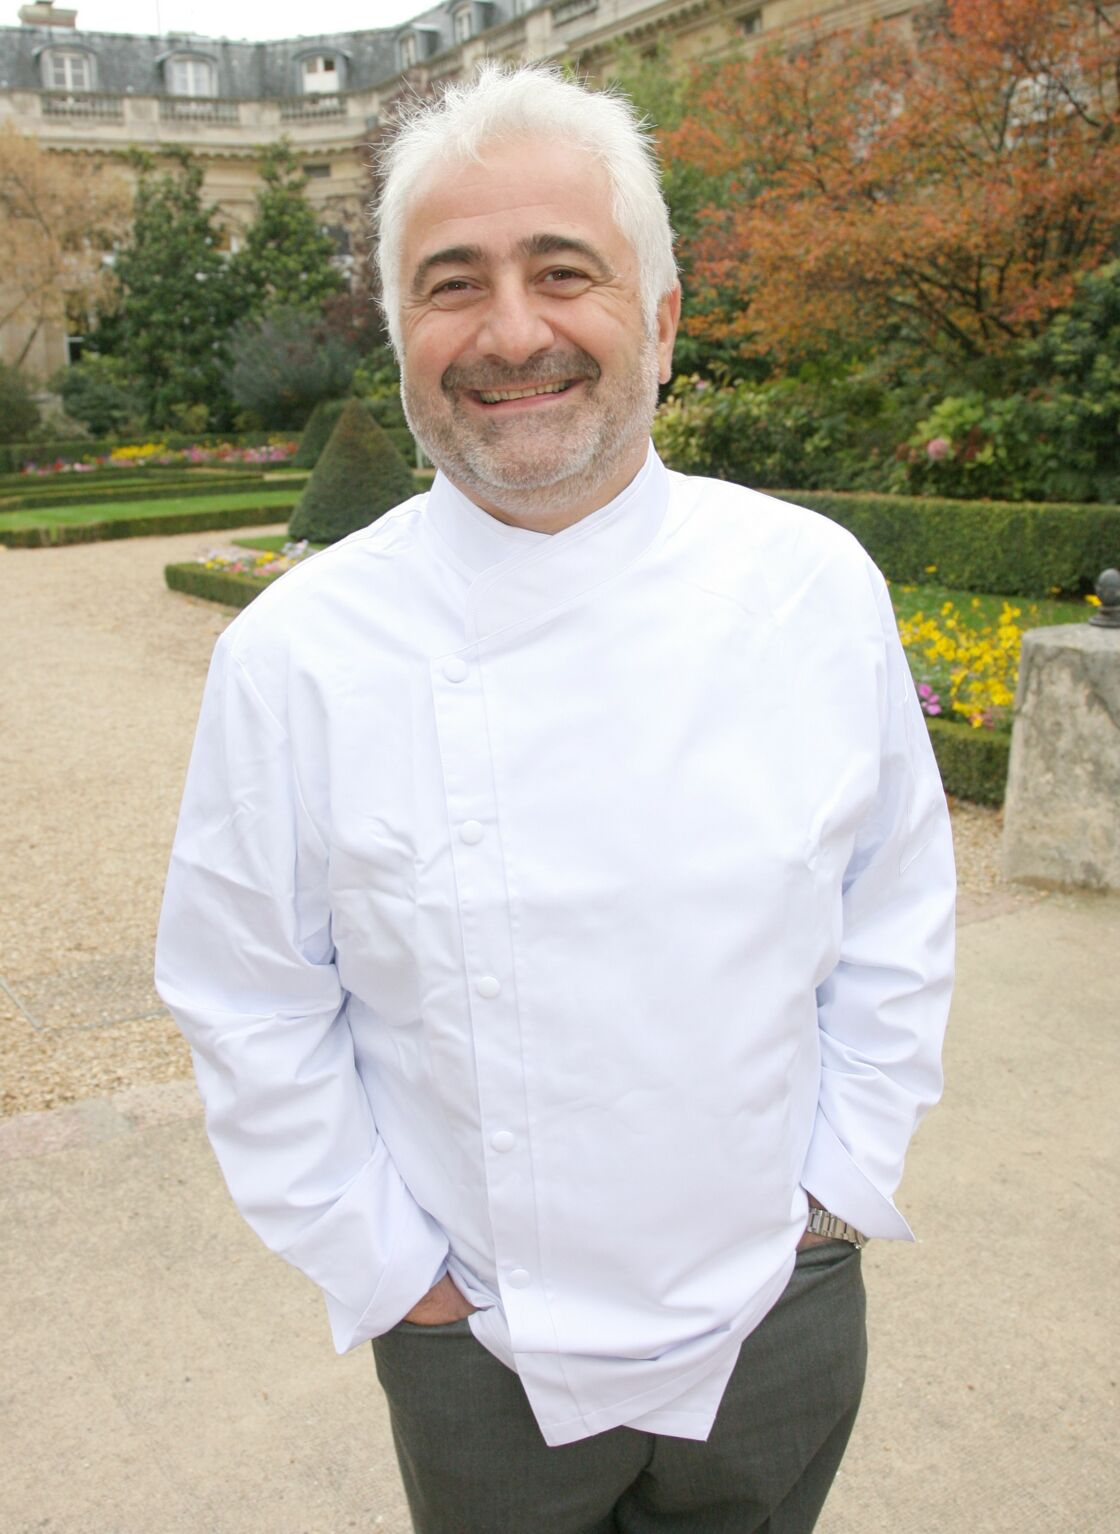 Le chef Guy Savoy